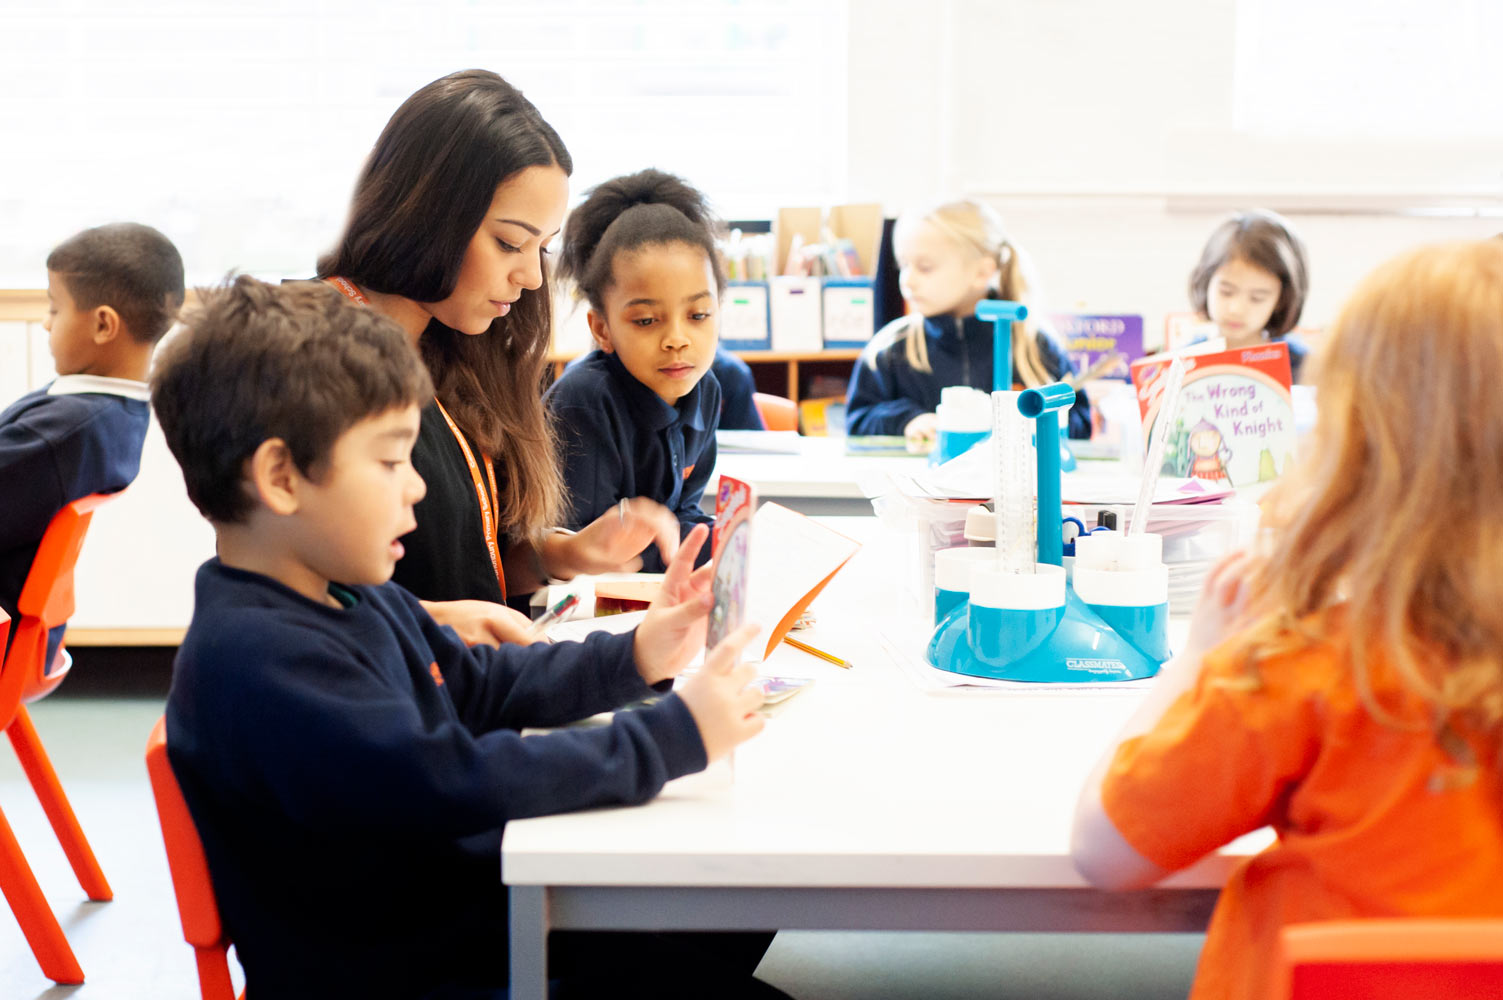 London school website photography of pupils interacting with teacher